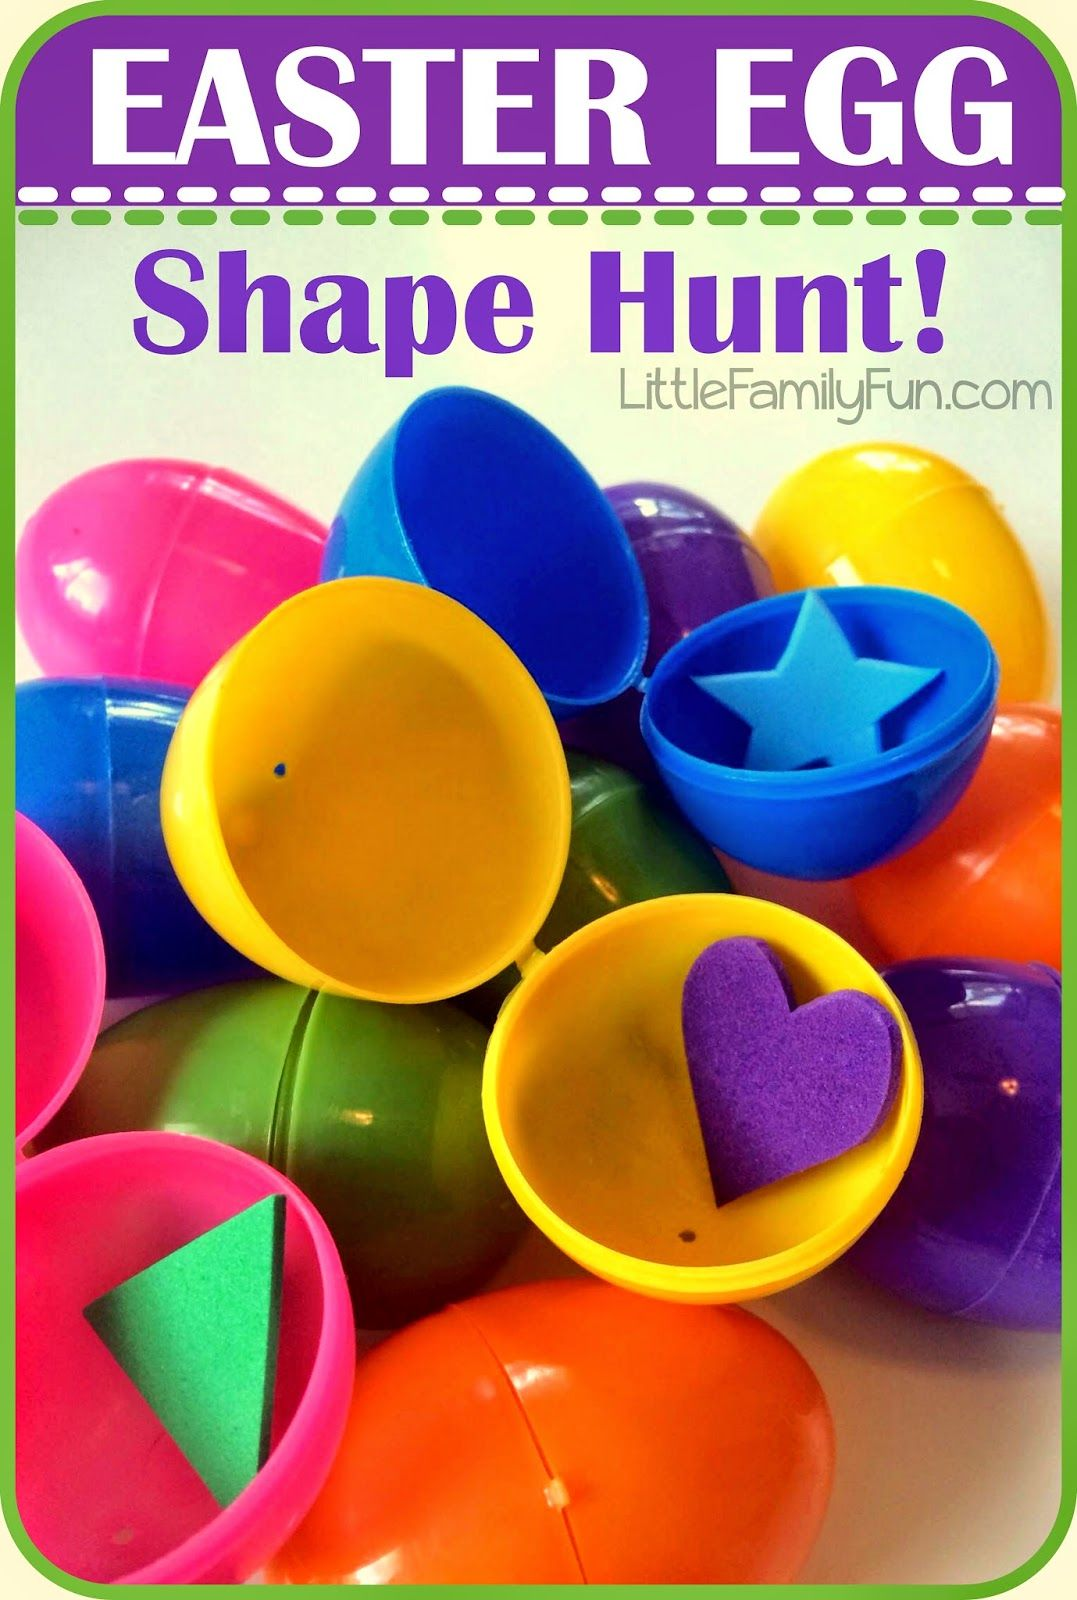 Easter Egg Treasure Hunt Ideas For Kids And Family